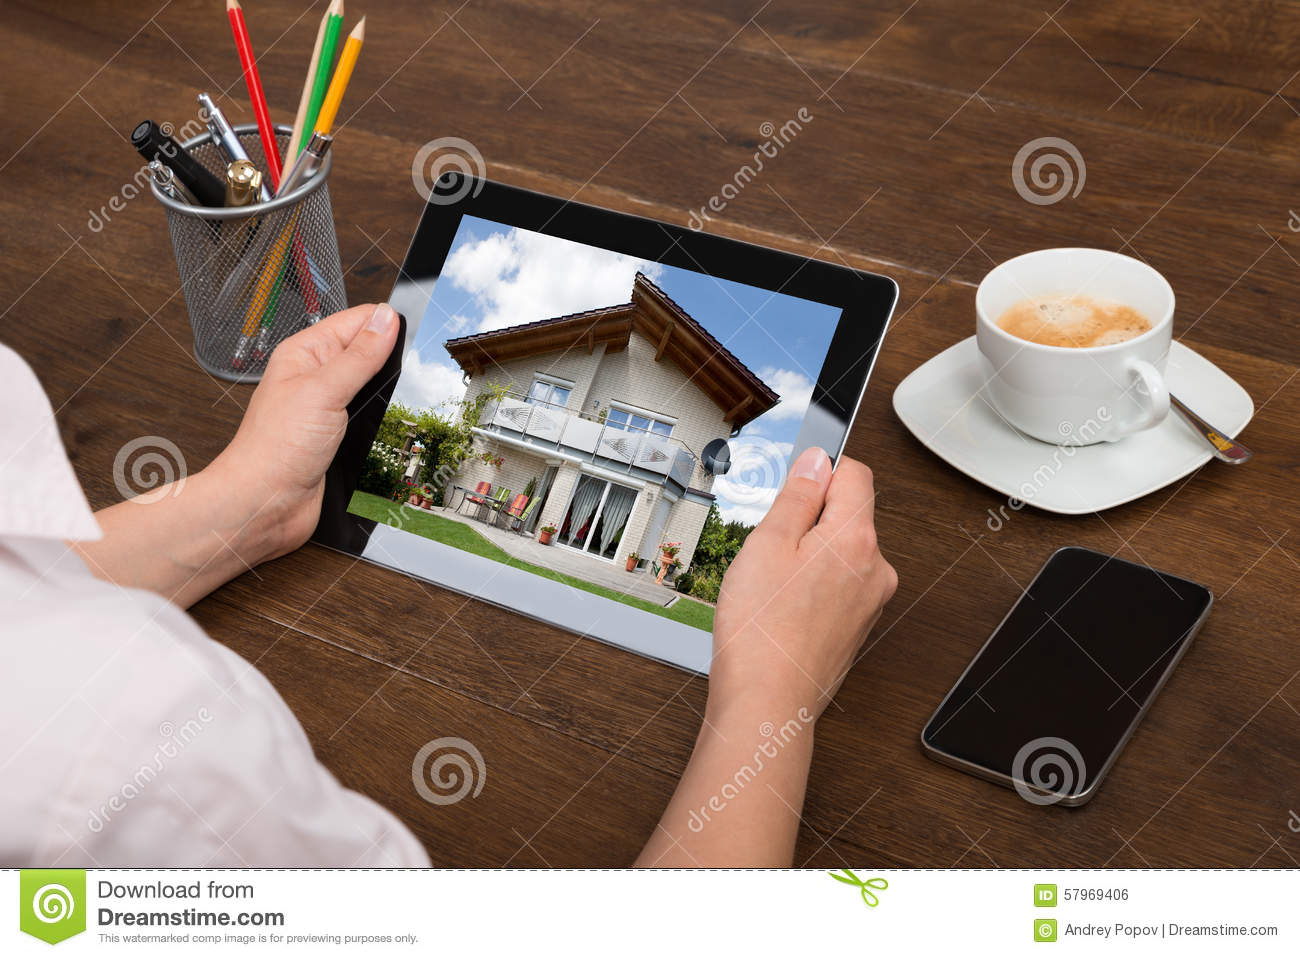 De Foto van Businesspersonlooking at house op Digitale Tablet